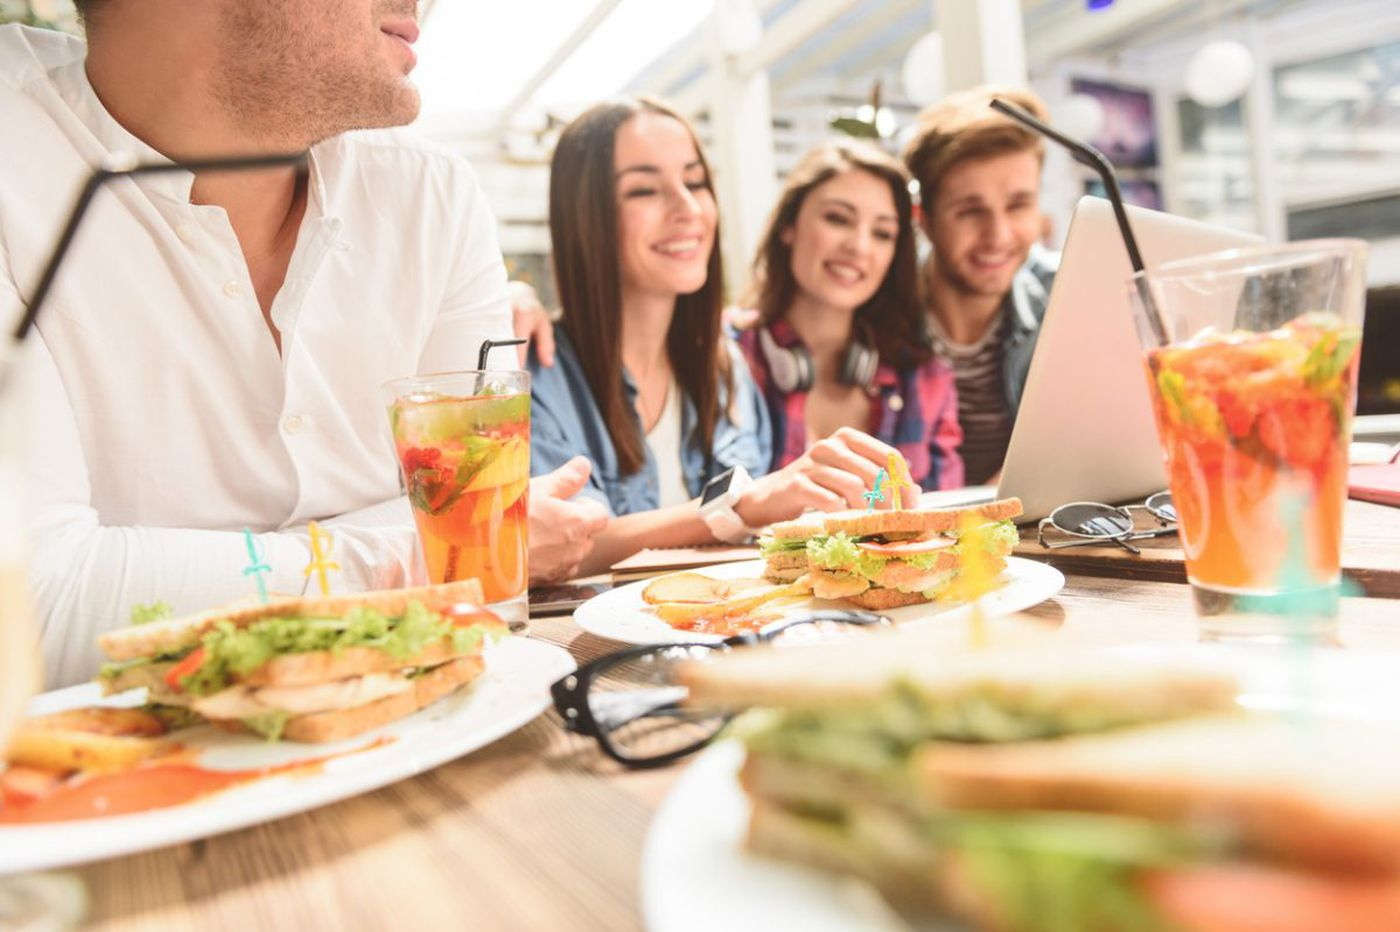 Hunger on college campuses: It's a real thing